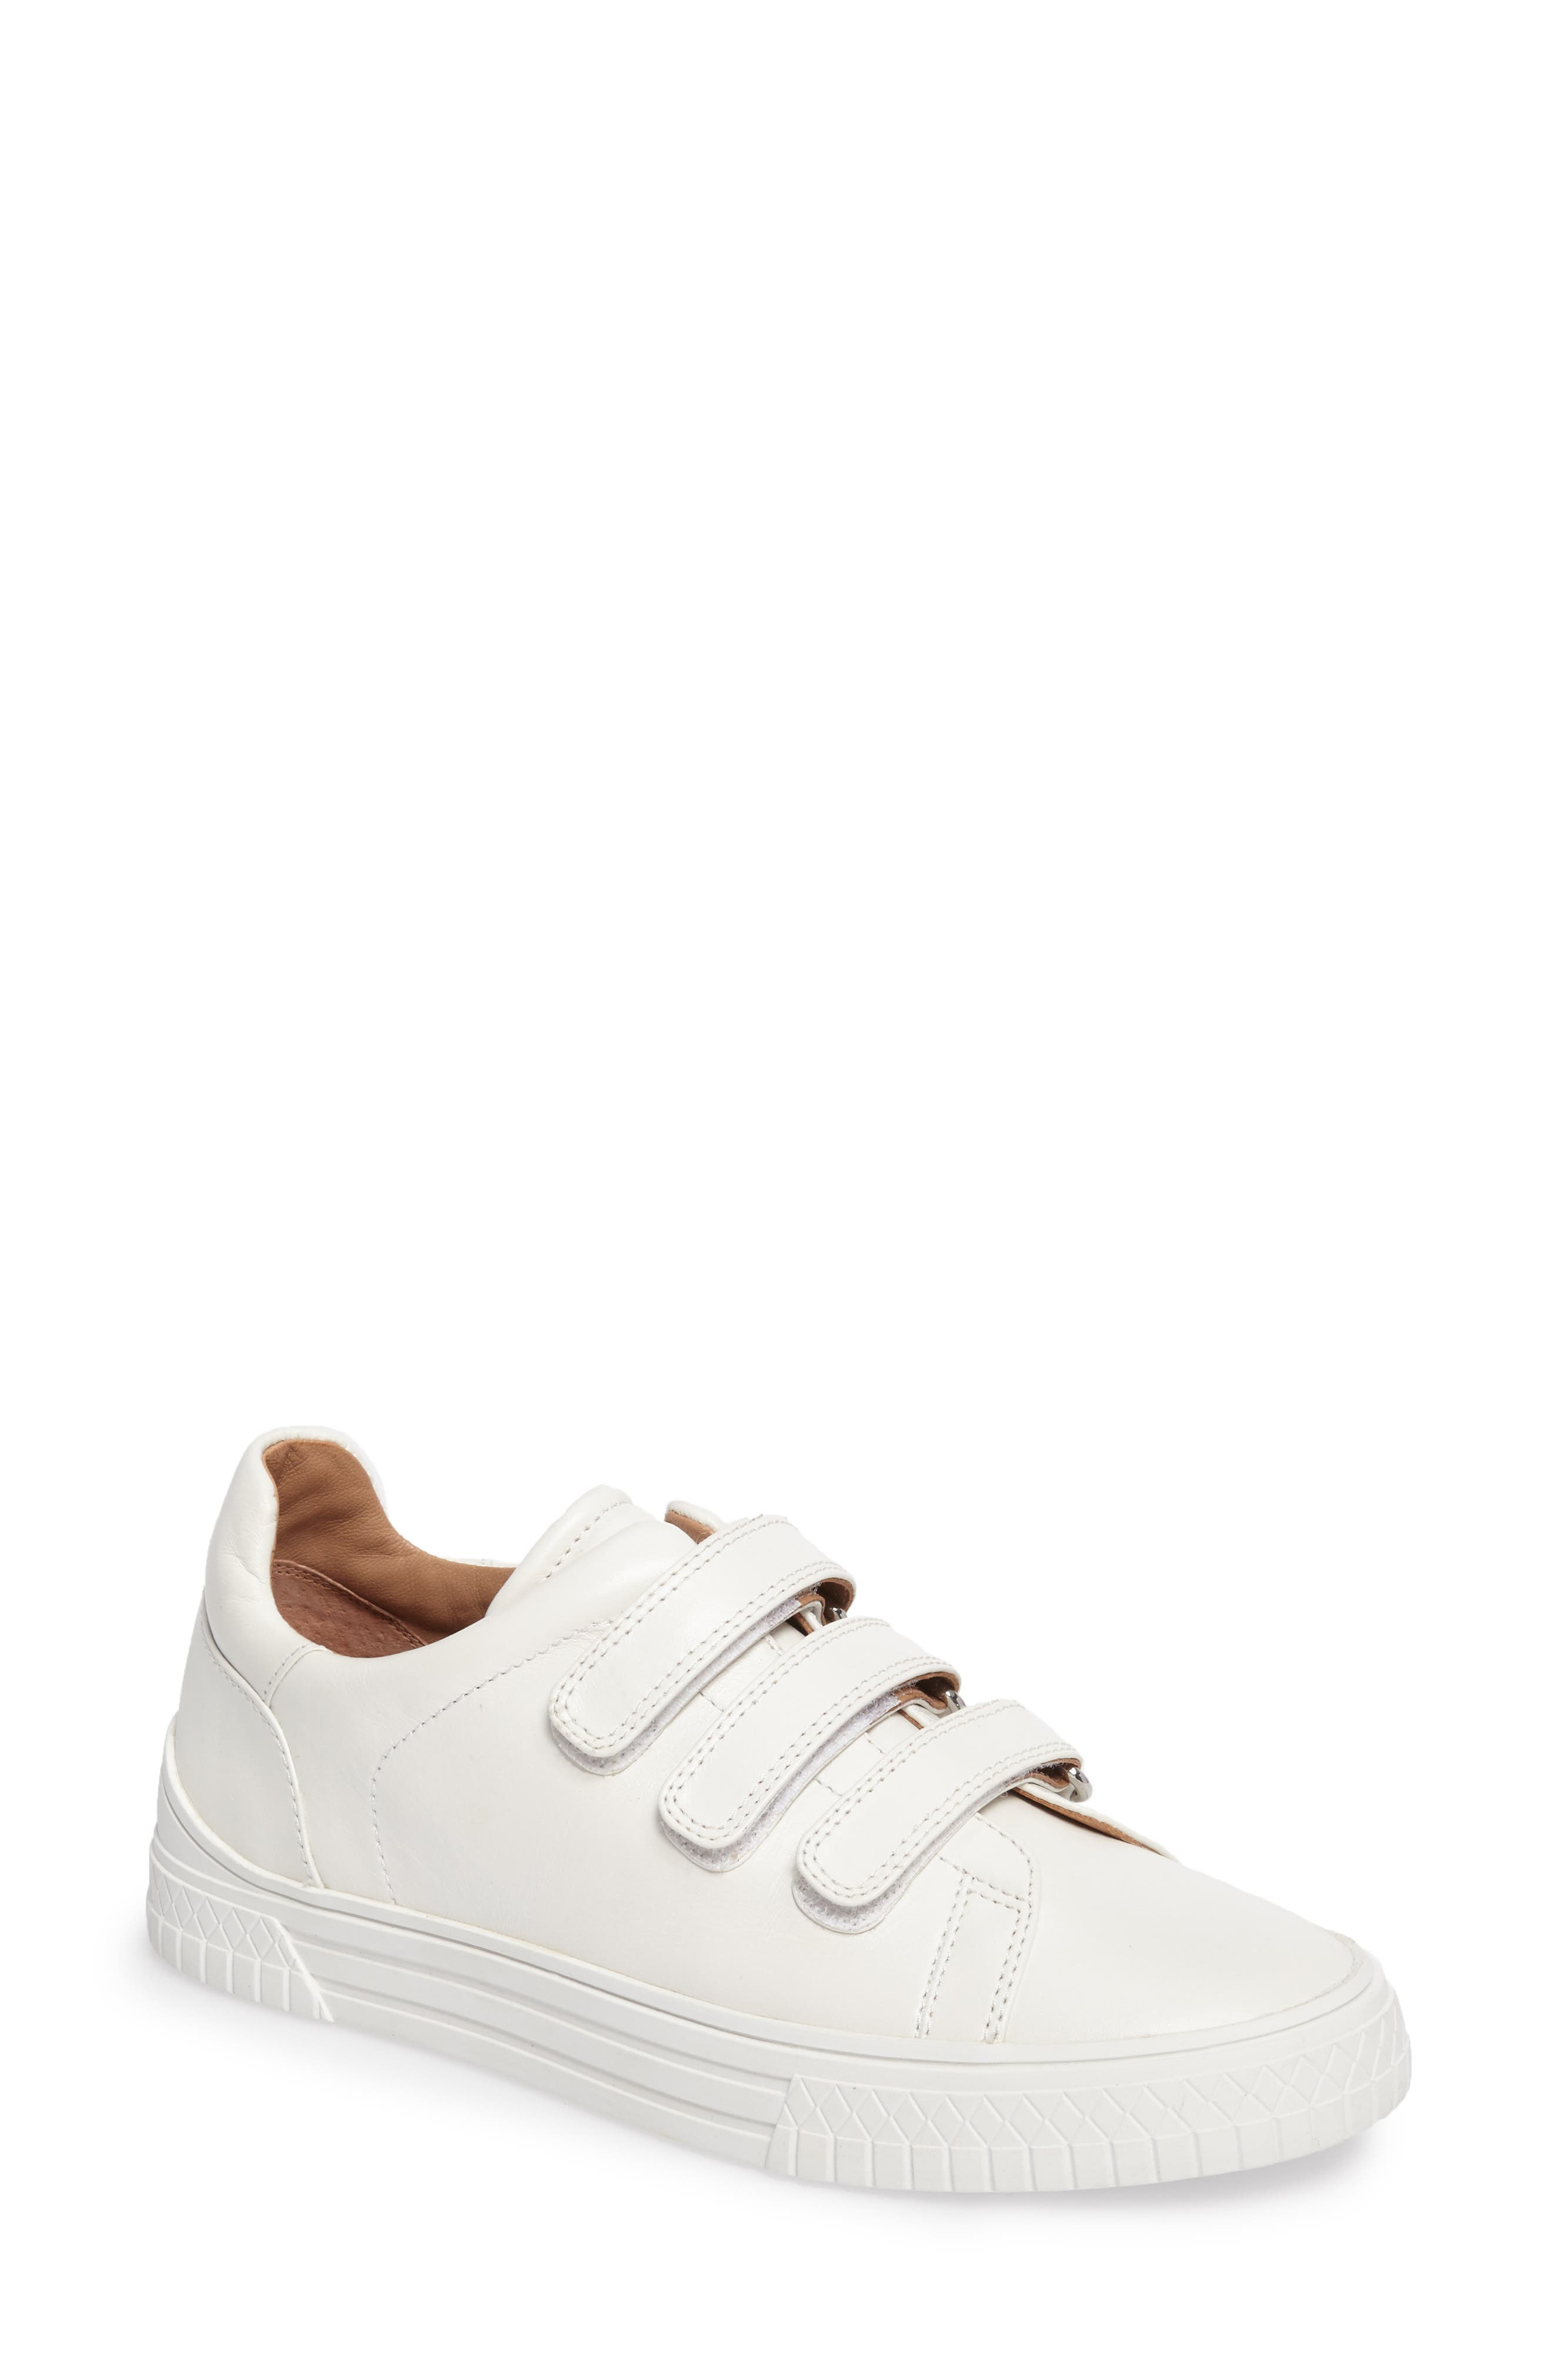 Grace Sneaker,                             Main thumbnail 1, color,                             White Leather